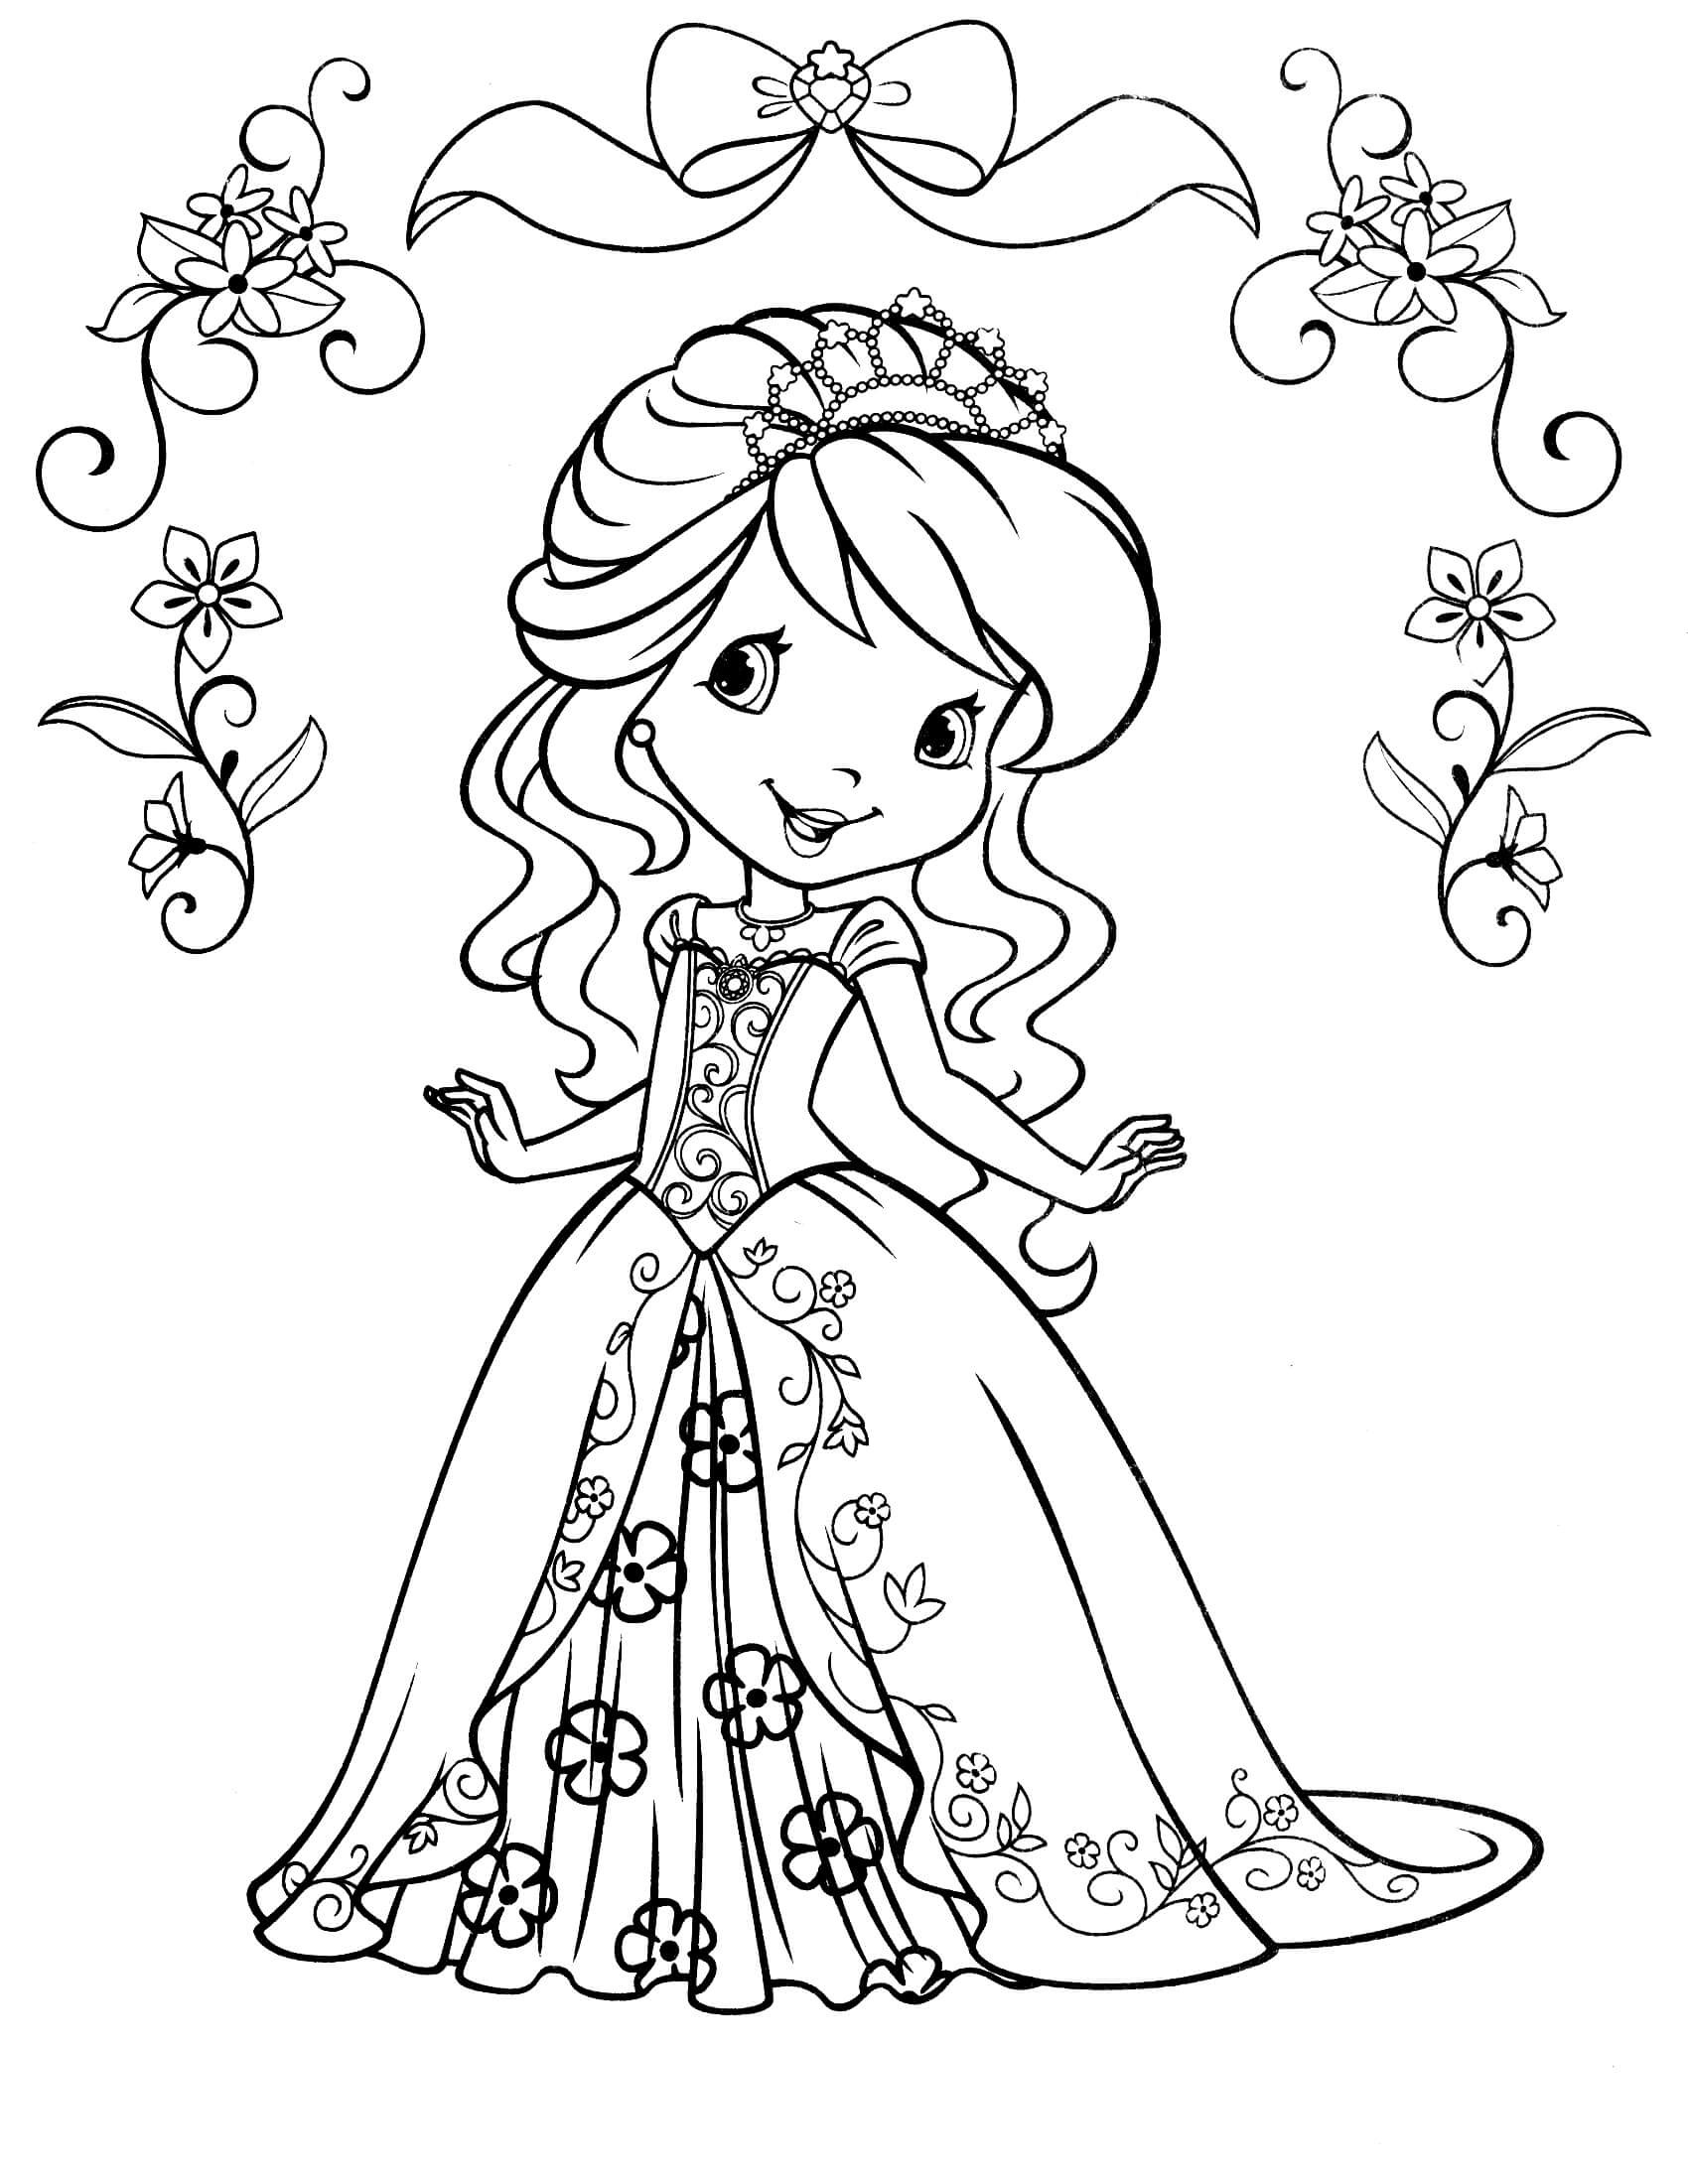 Strawberry Shortcake Coloring Page  Strawberry Shortcake 59 Coloringcolor